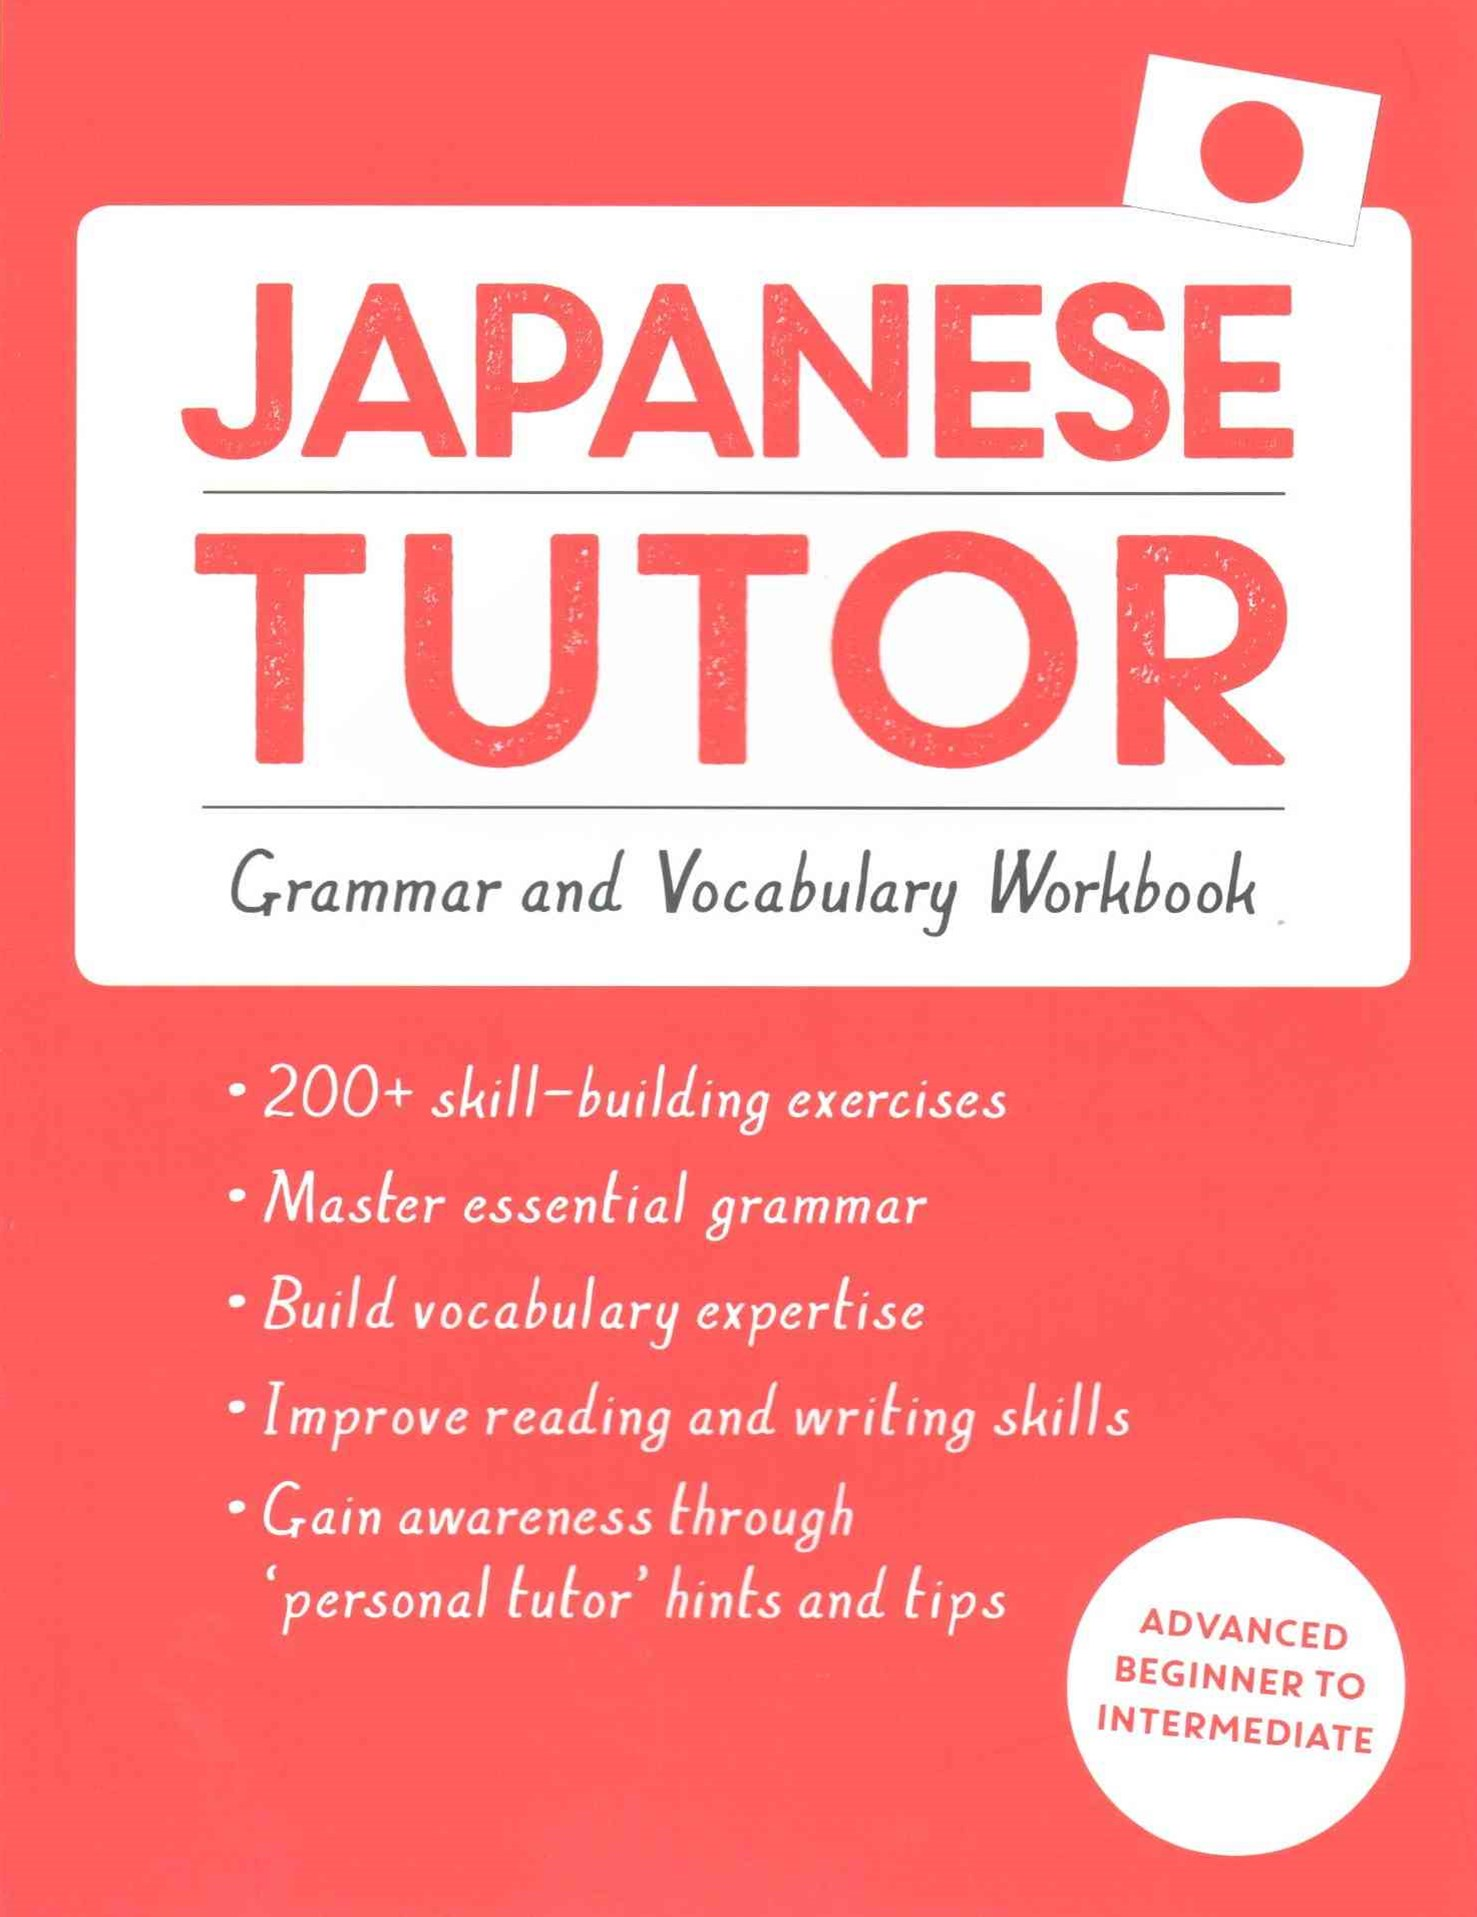 Japanese Tutor: Grammar and Vocabulary Workbook (Learn Japanese with Teach Yourself)